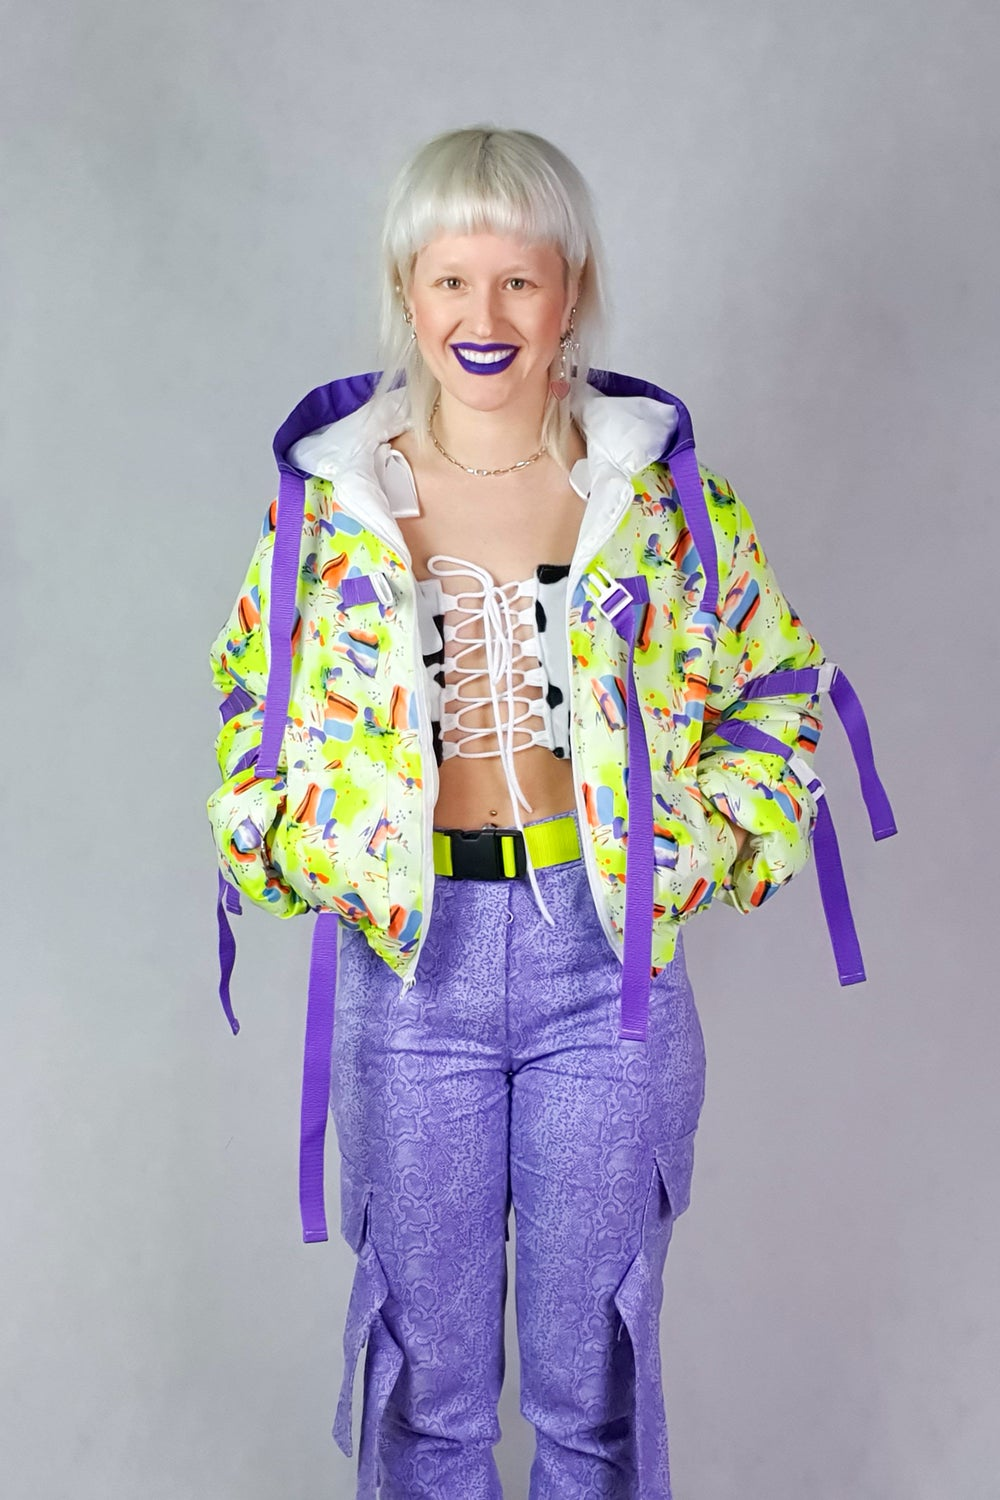 Image of Neon yellow jacket